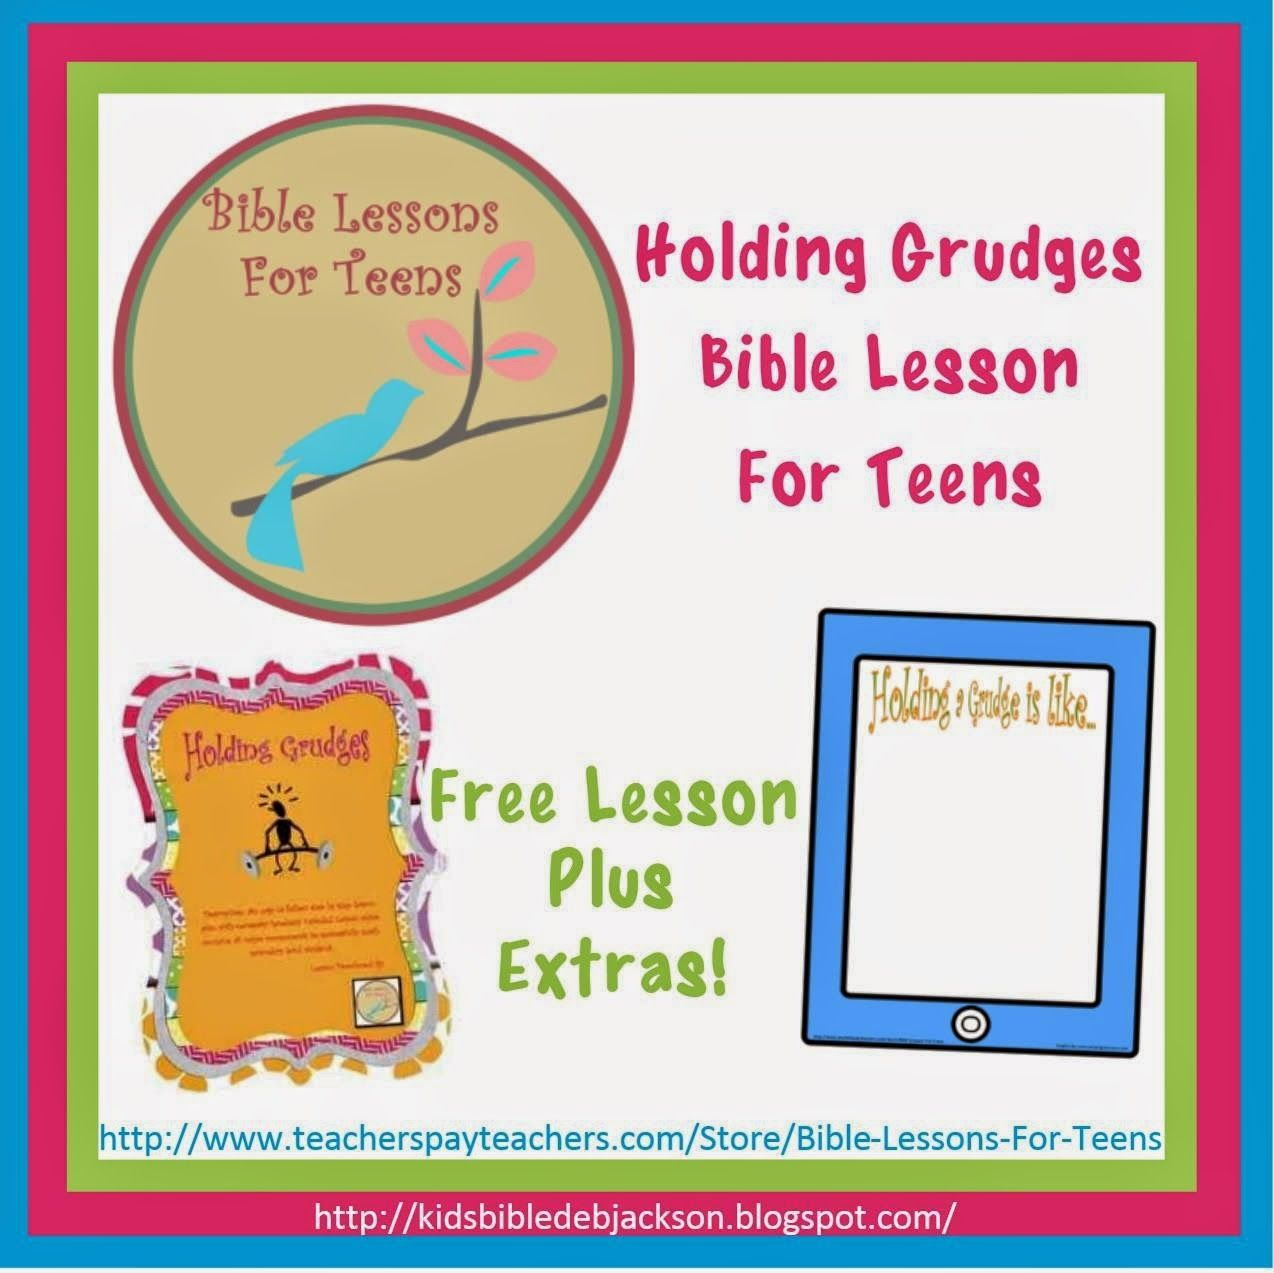 Bible Fun For Kids: Holding Grudges Lesson for Teens Maybe I could